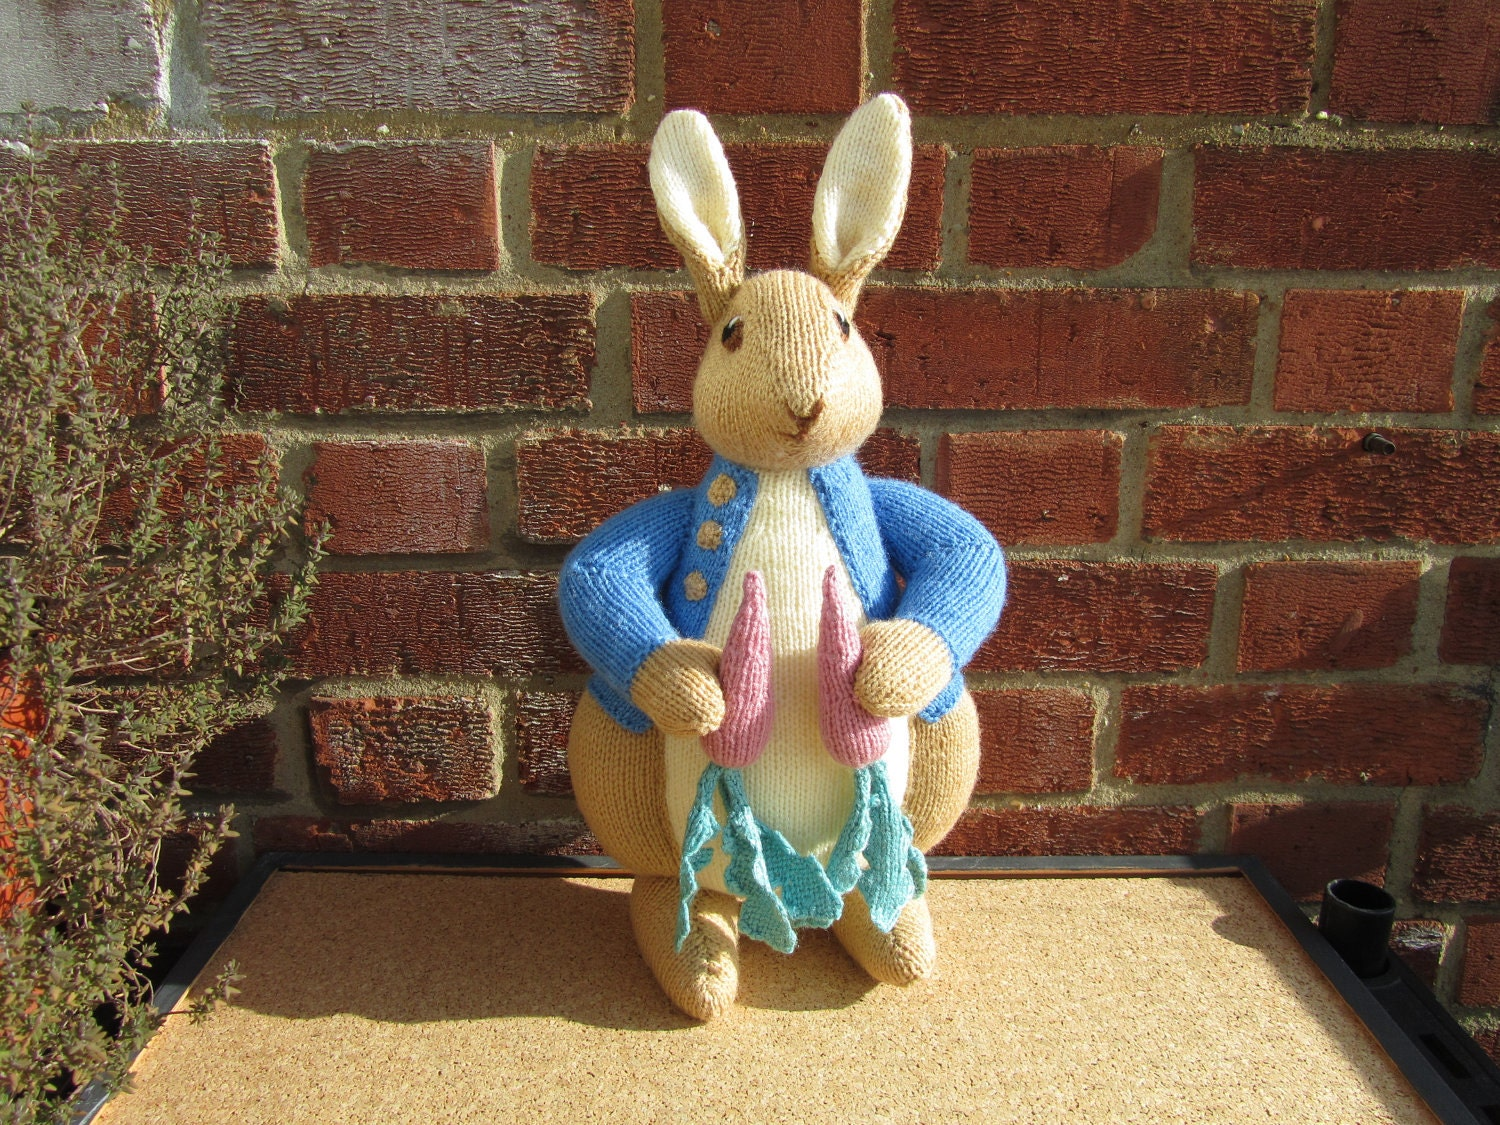 Knitting Pattern Peter Rabbit : Hand Knitted Toy Beatrix Potter Peter Rabbit from Alan Dart